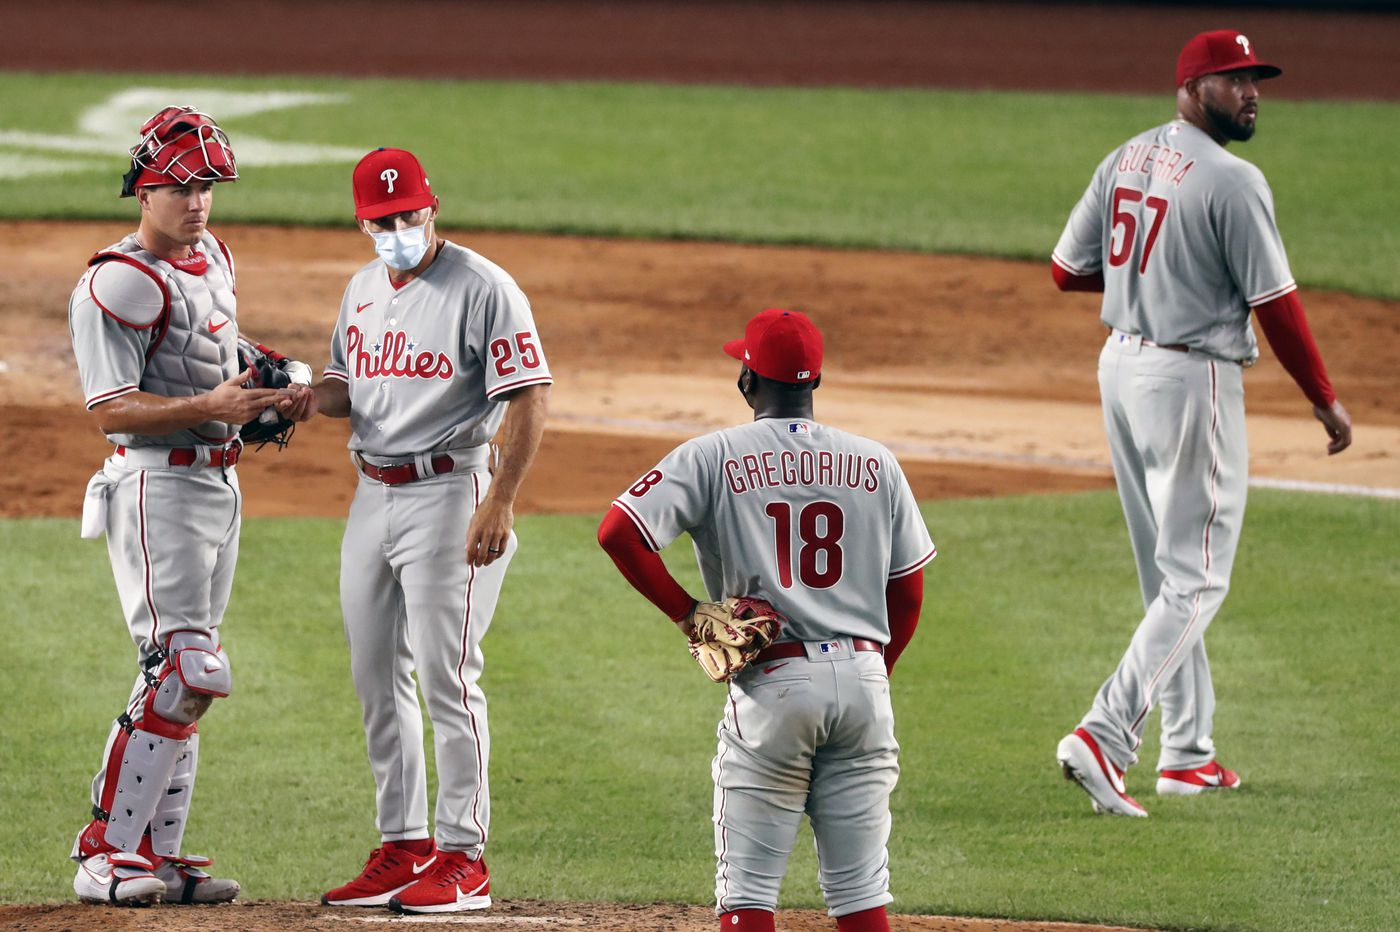 Phillies bullpen continues to be a problem, so bring on seven-inning doubleheaders